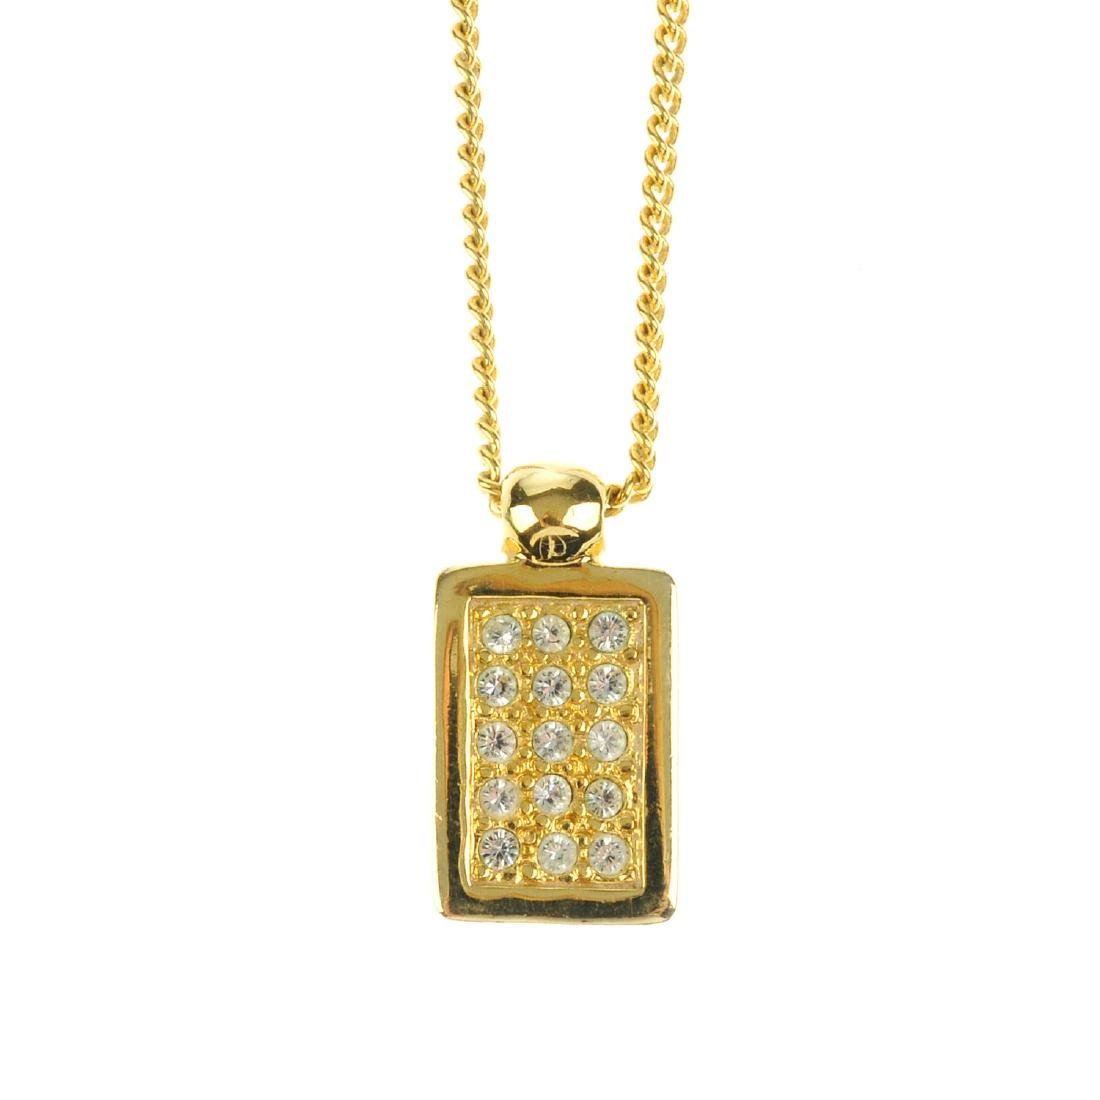 DIOR - a pendant necklace. The curb-link chain